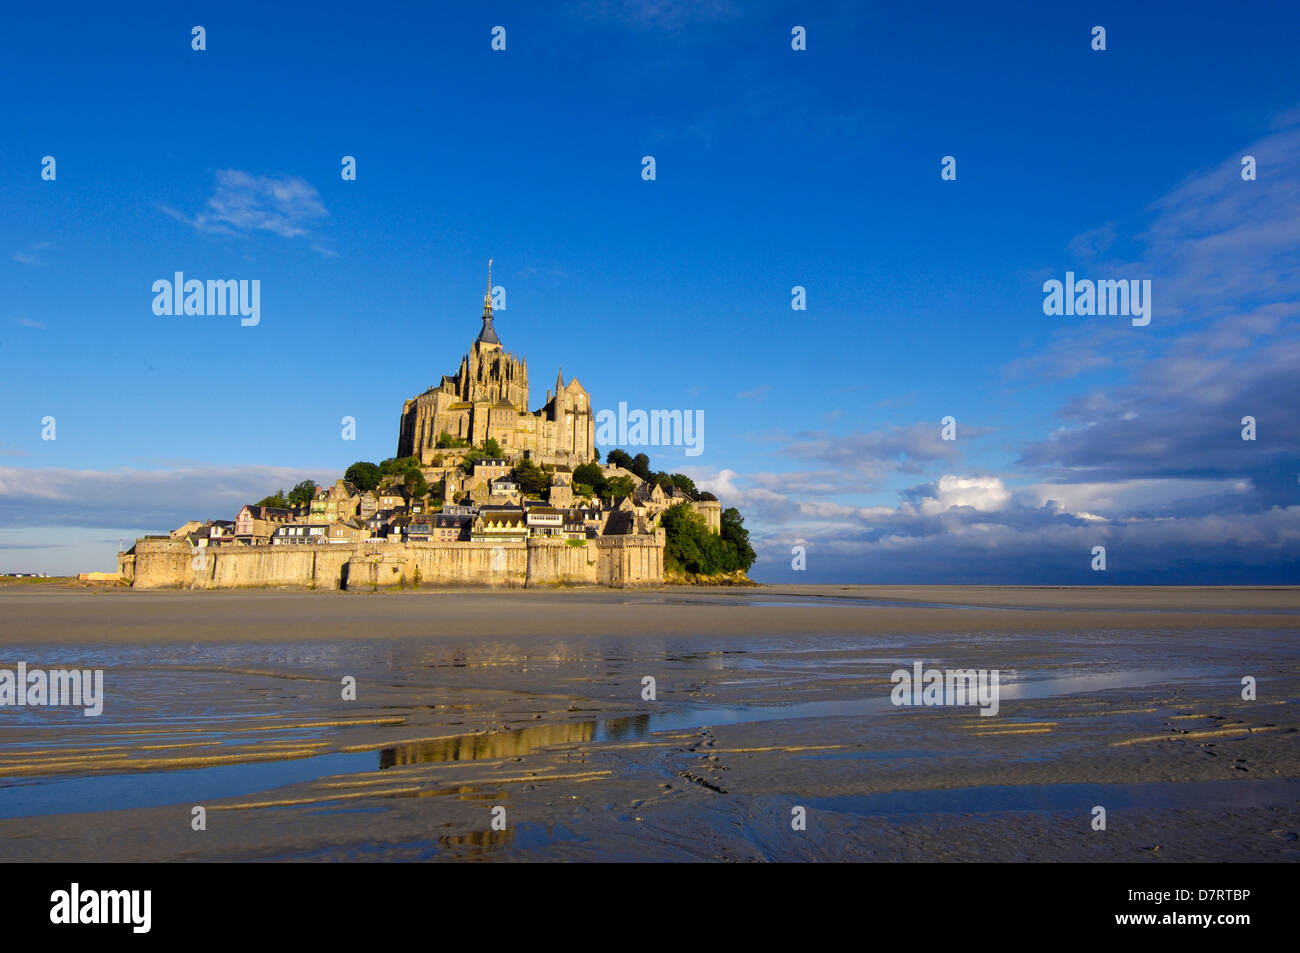 Mont-Saint-Michel (abbaye bénédictine). La Normandie. France Photo Stock